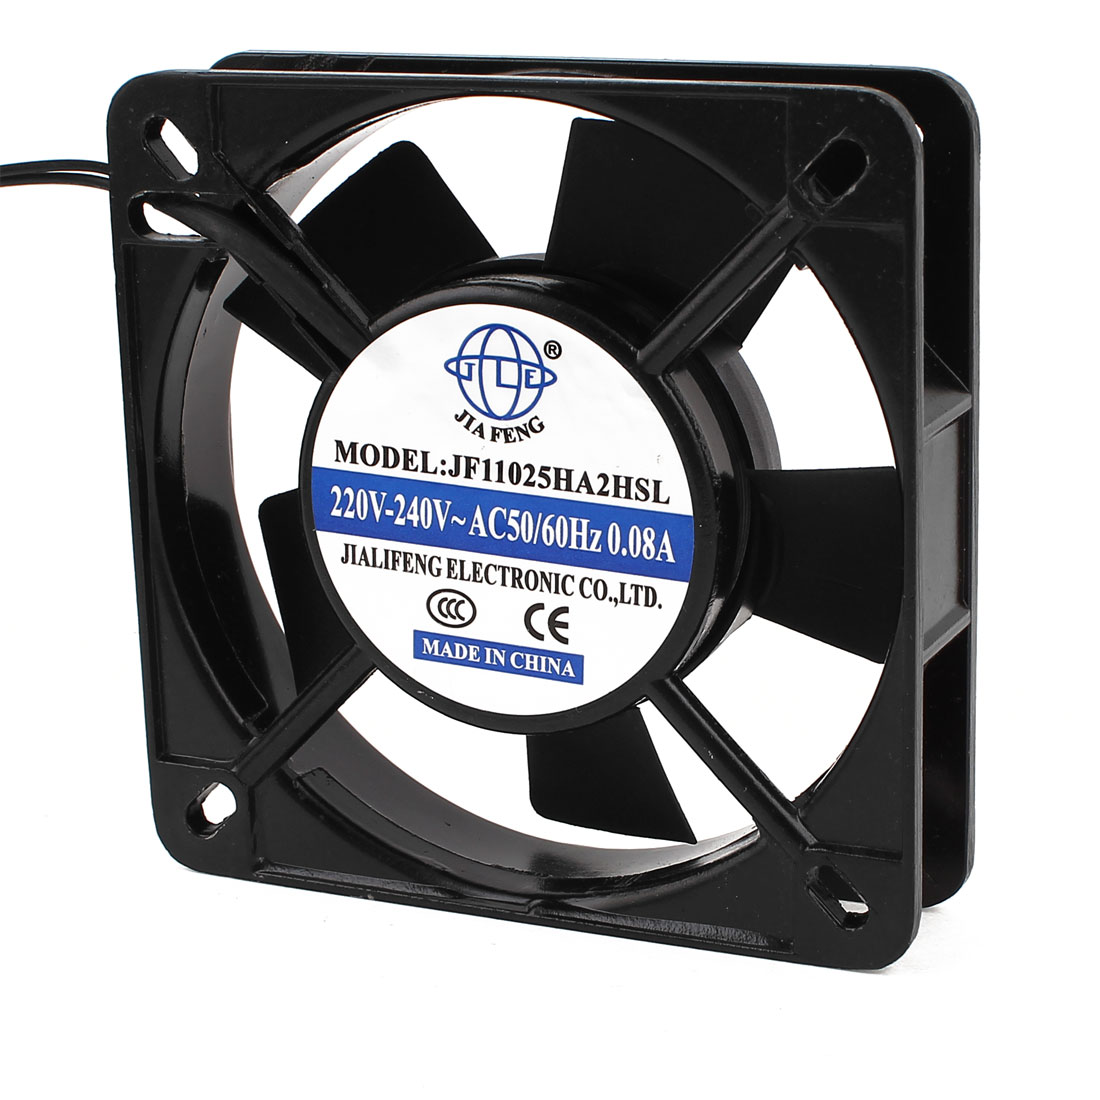 AC 220V-240V 0.08A 2 Wires Sleeve Bearing Axial Cooling Fan 110mm x 25mm 11025